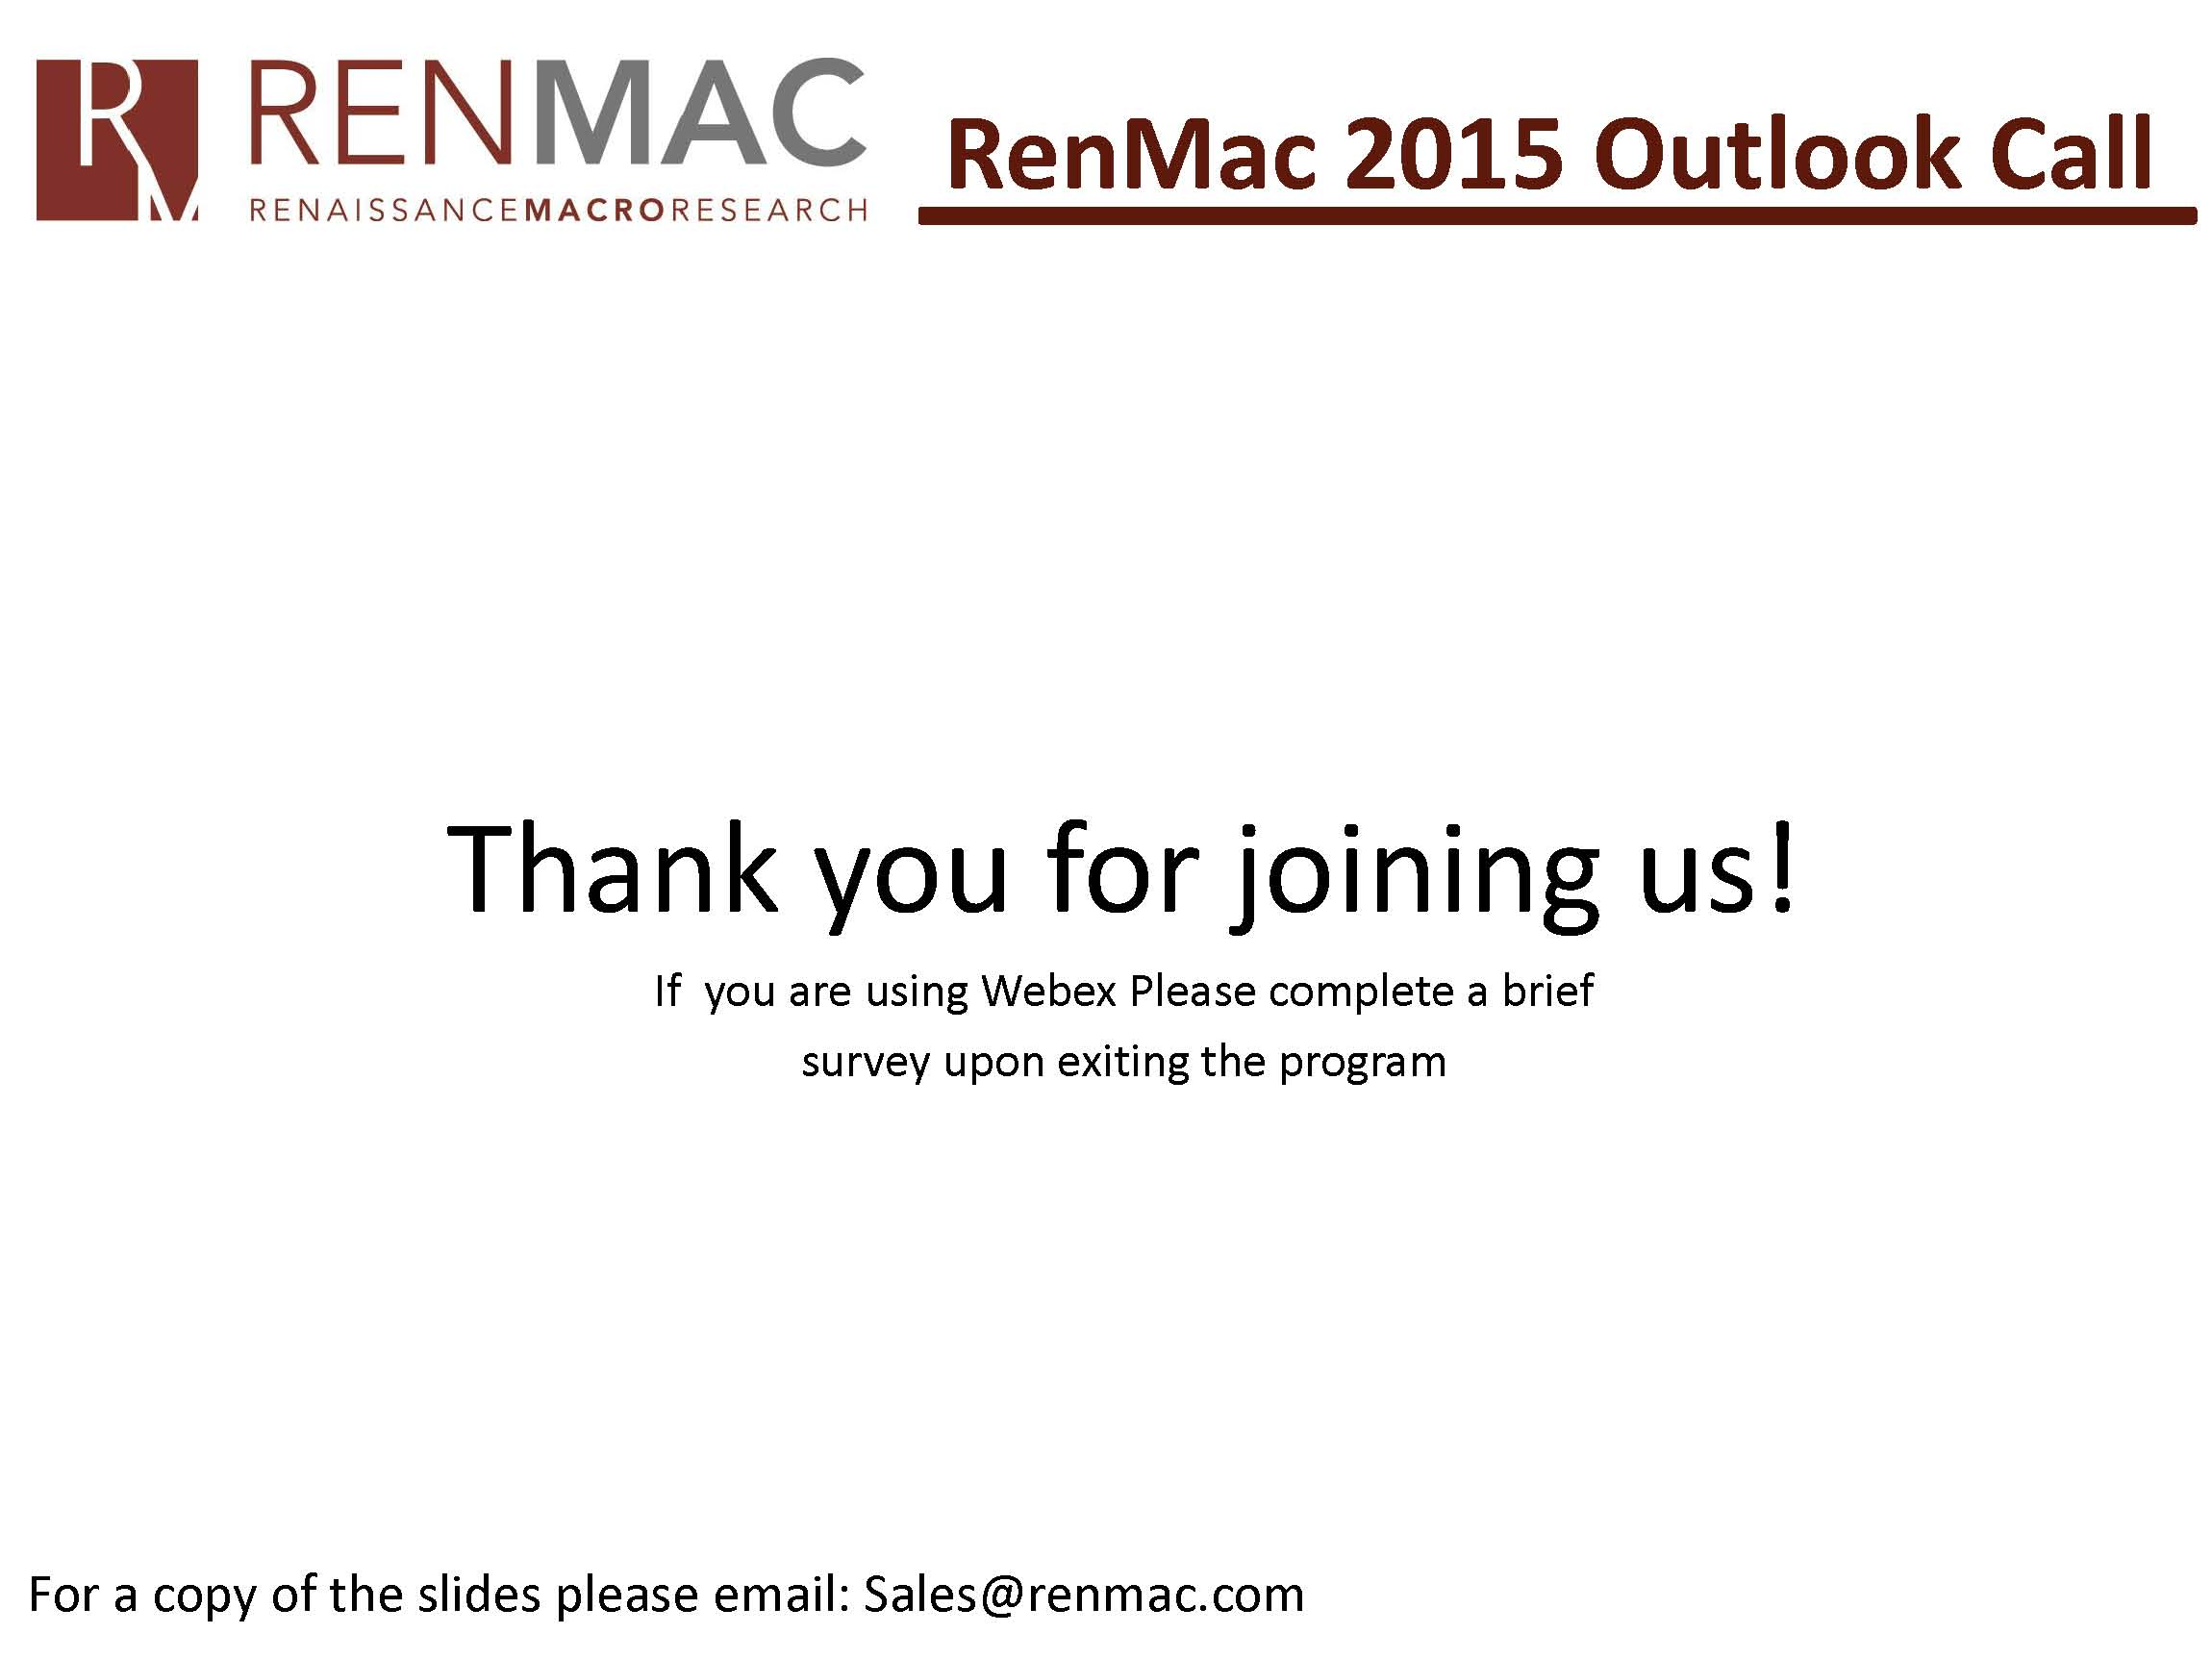 RenMac 2015 Outlook Call_Page_65